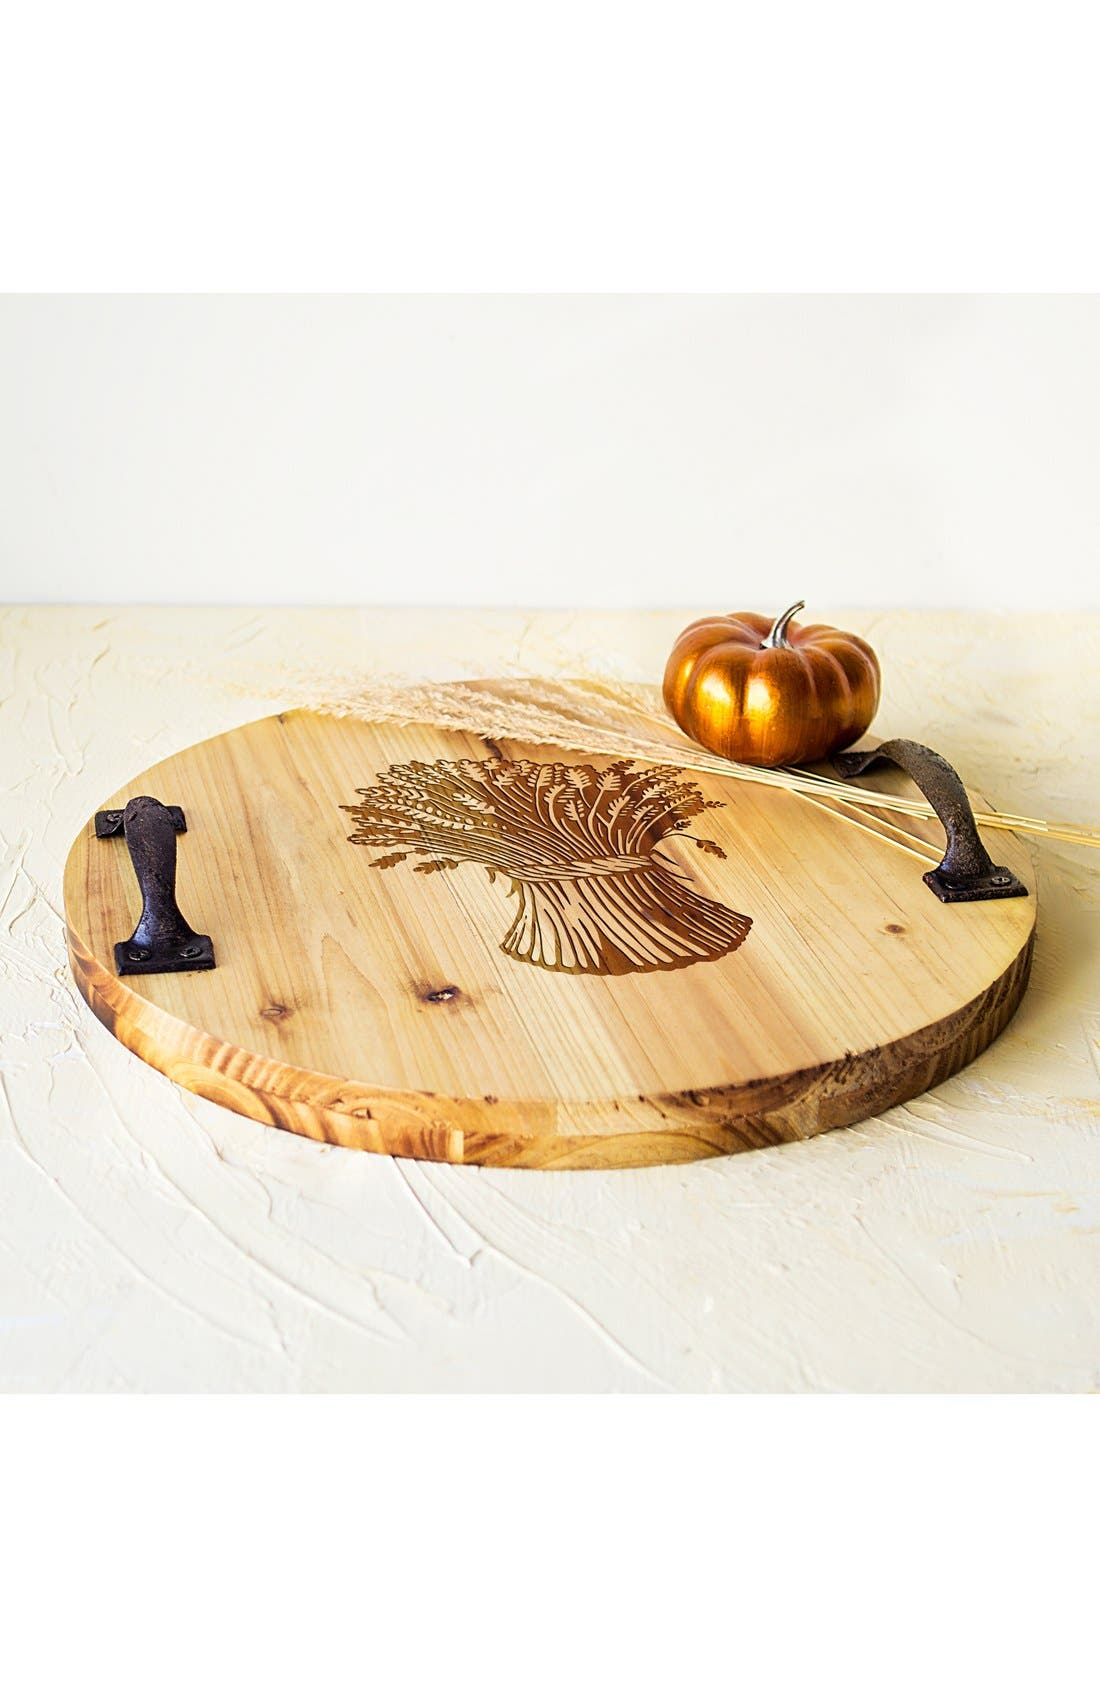 'Wheat Stalk' Rustic Wooden Tray,                             Alternate thumbnail 3, color,